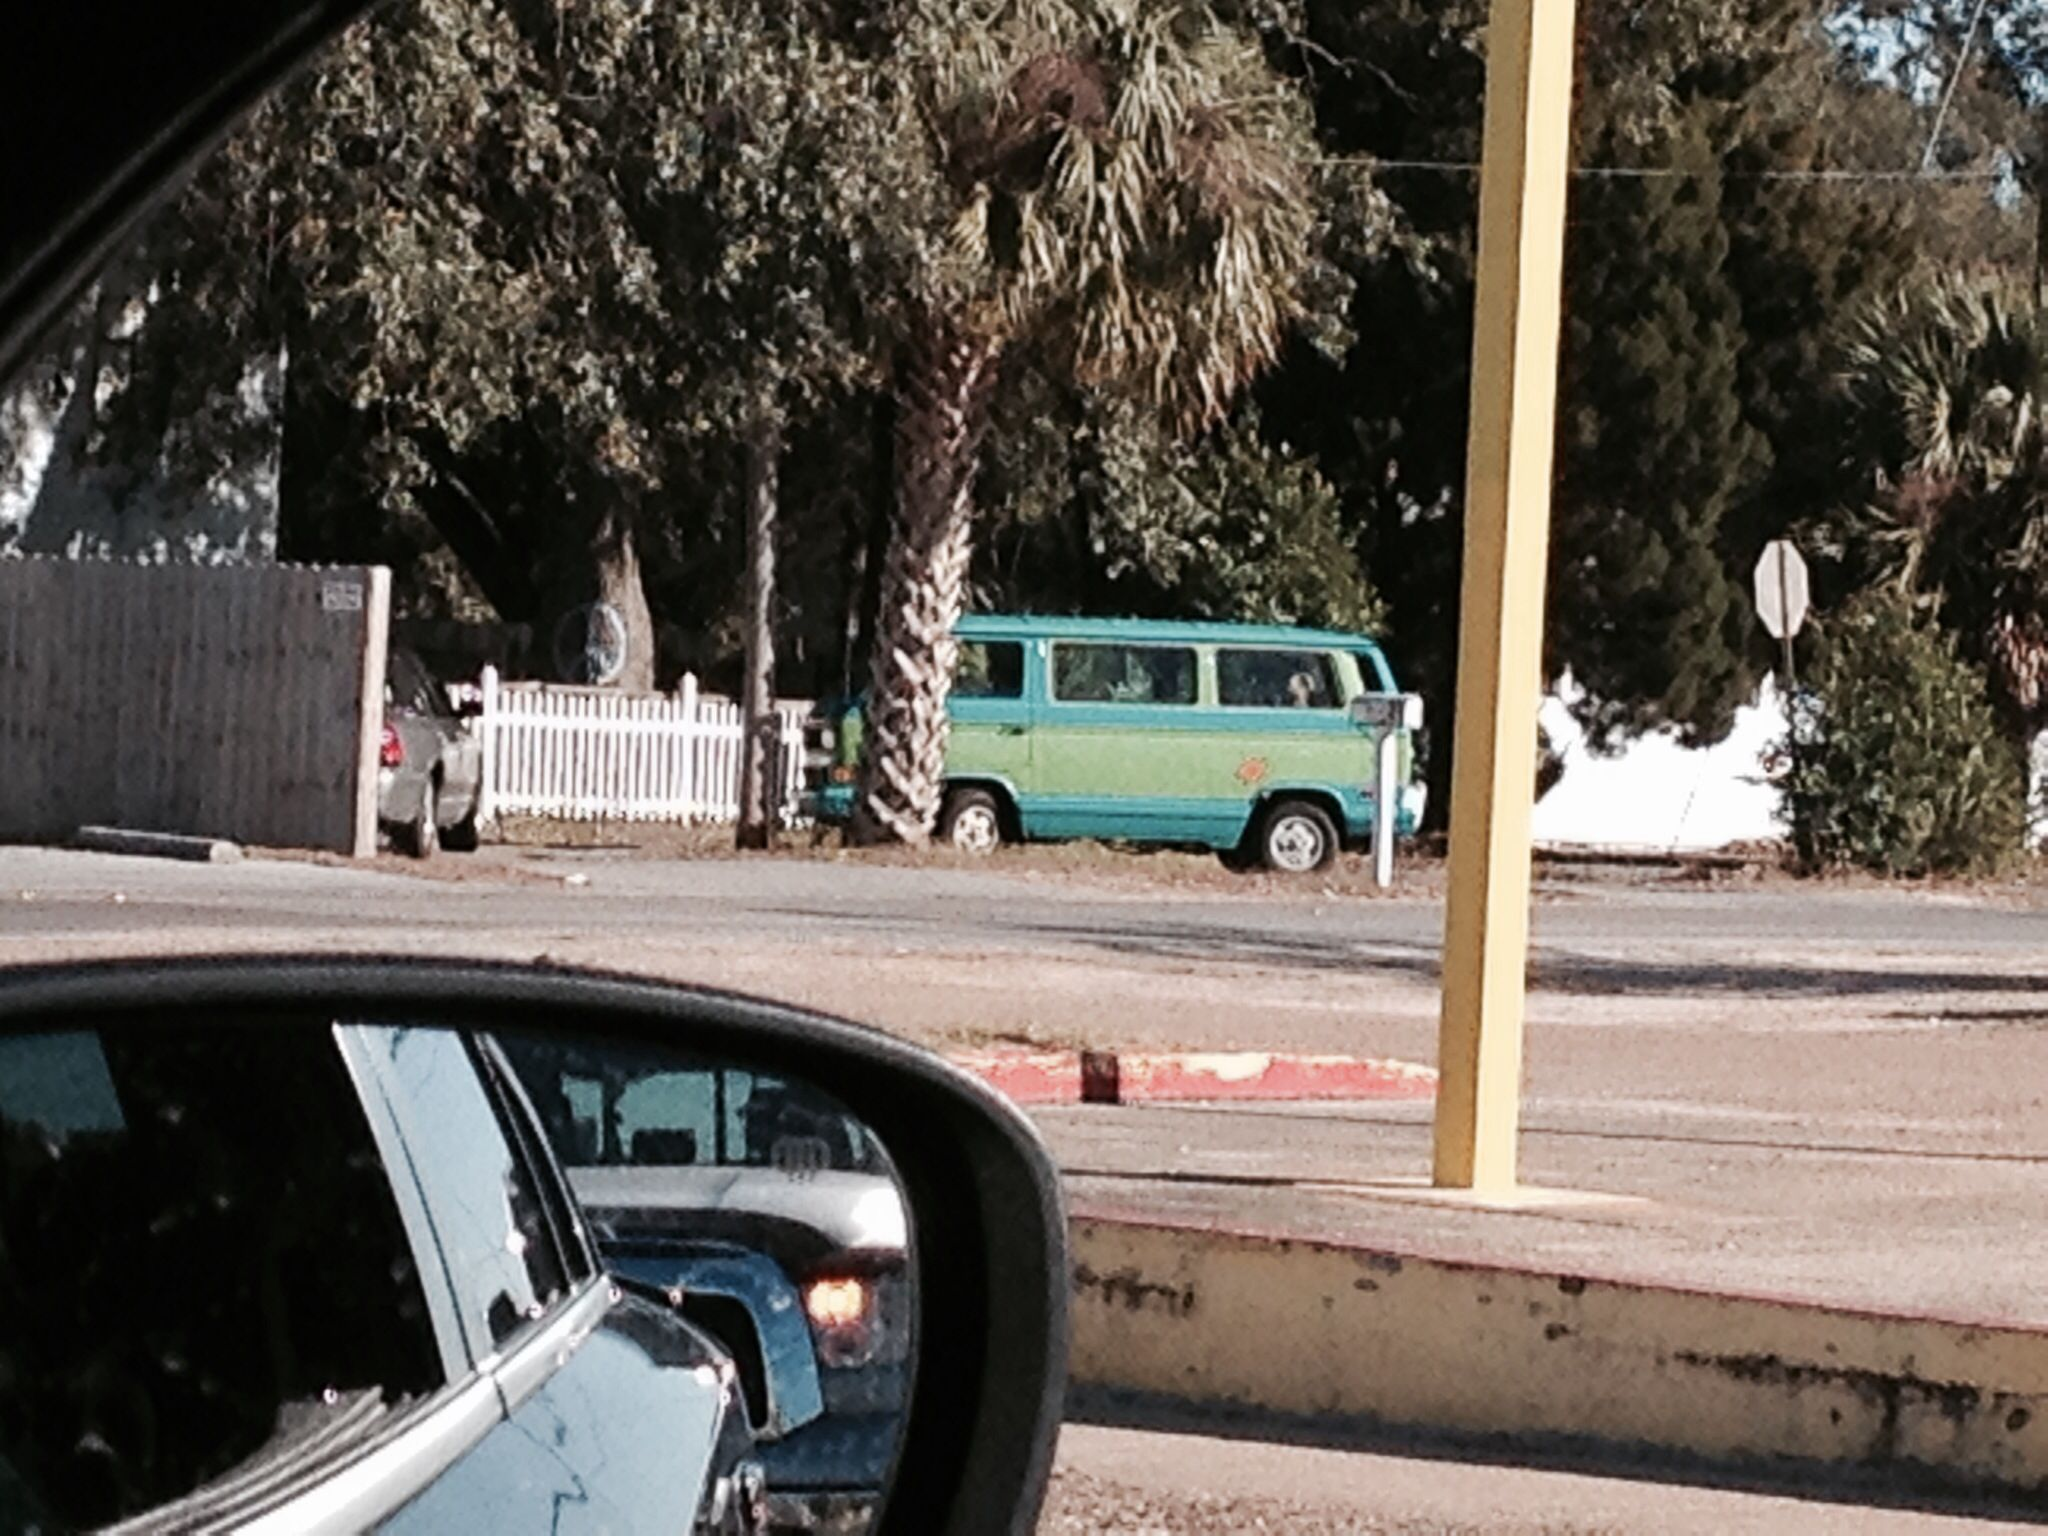 Found the mystery machine in Fort Walton